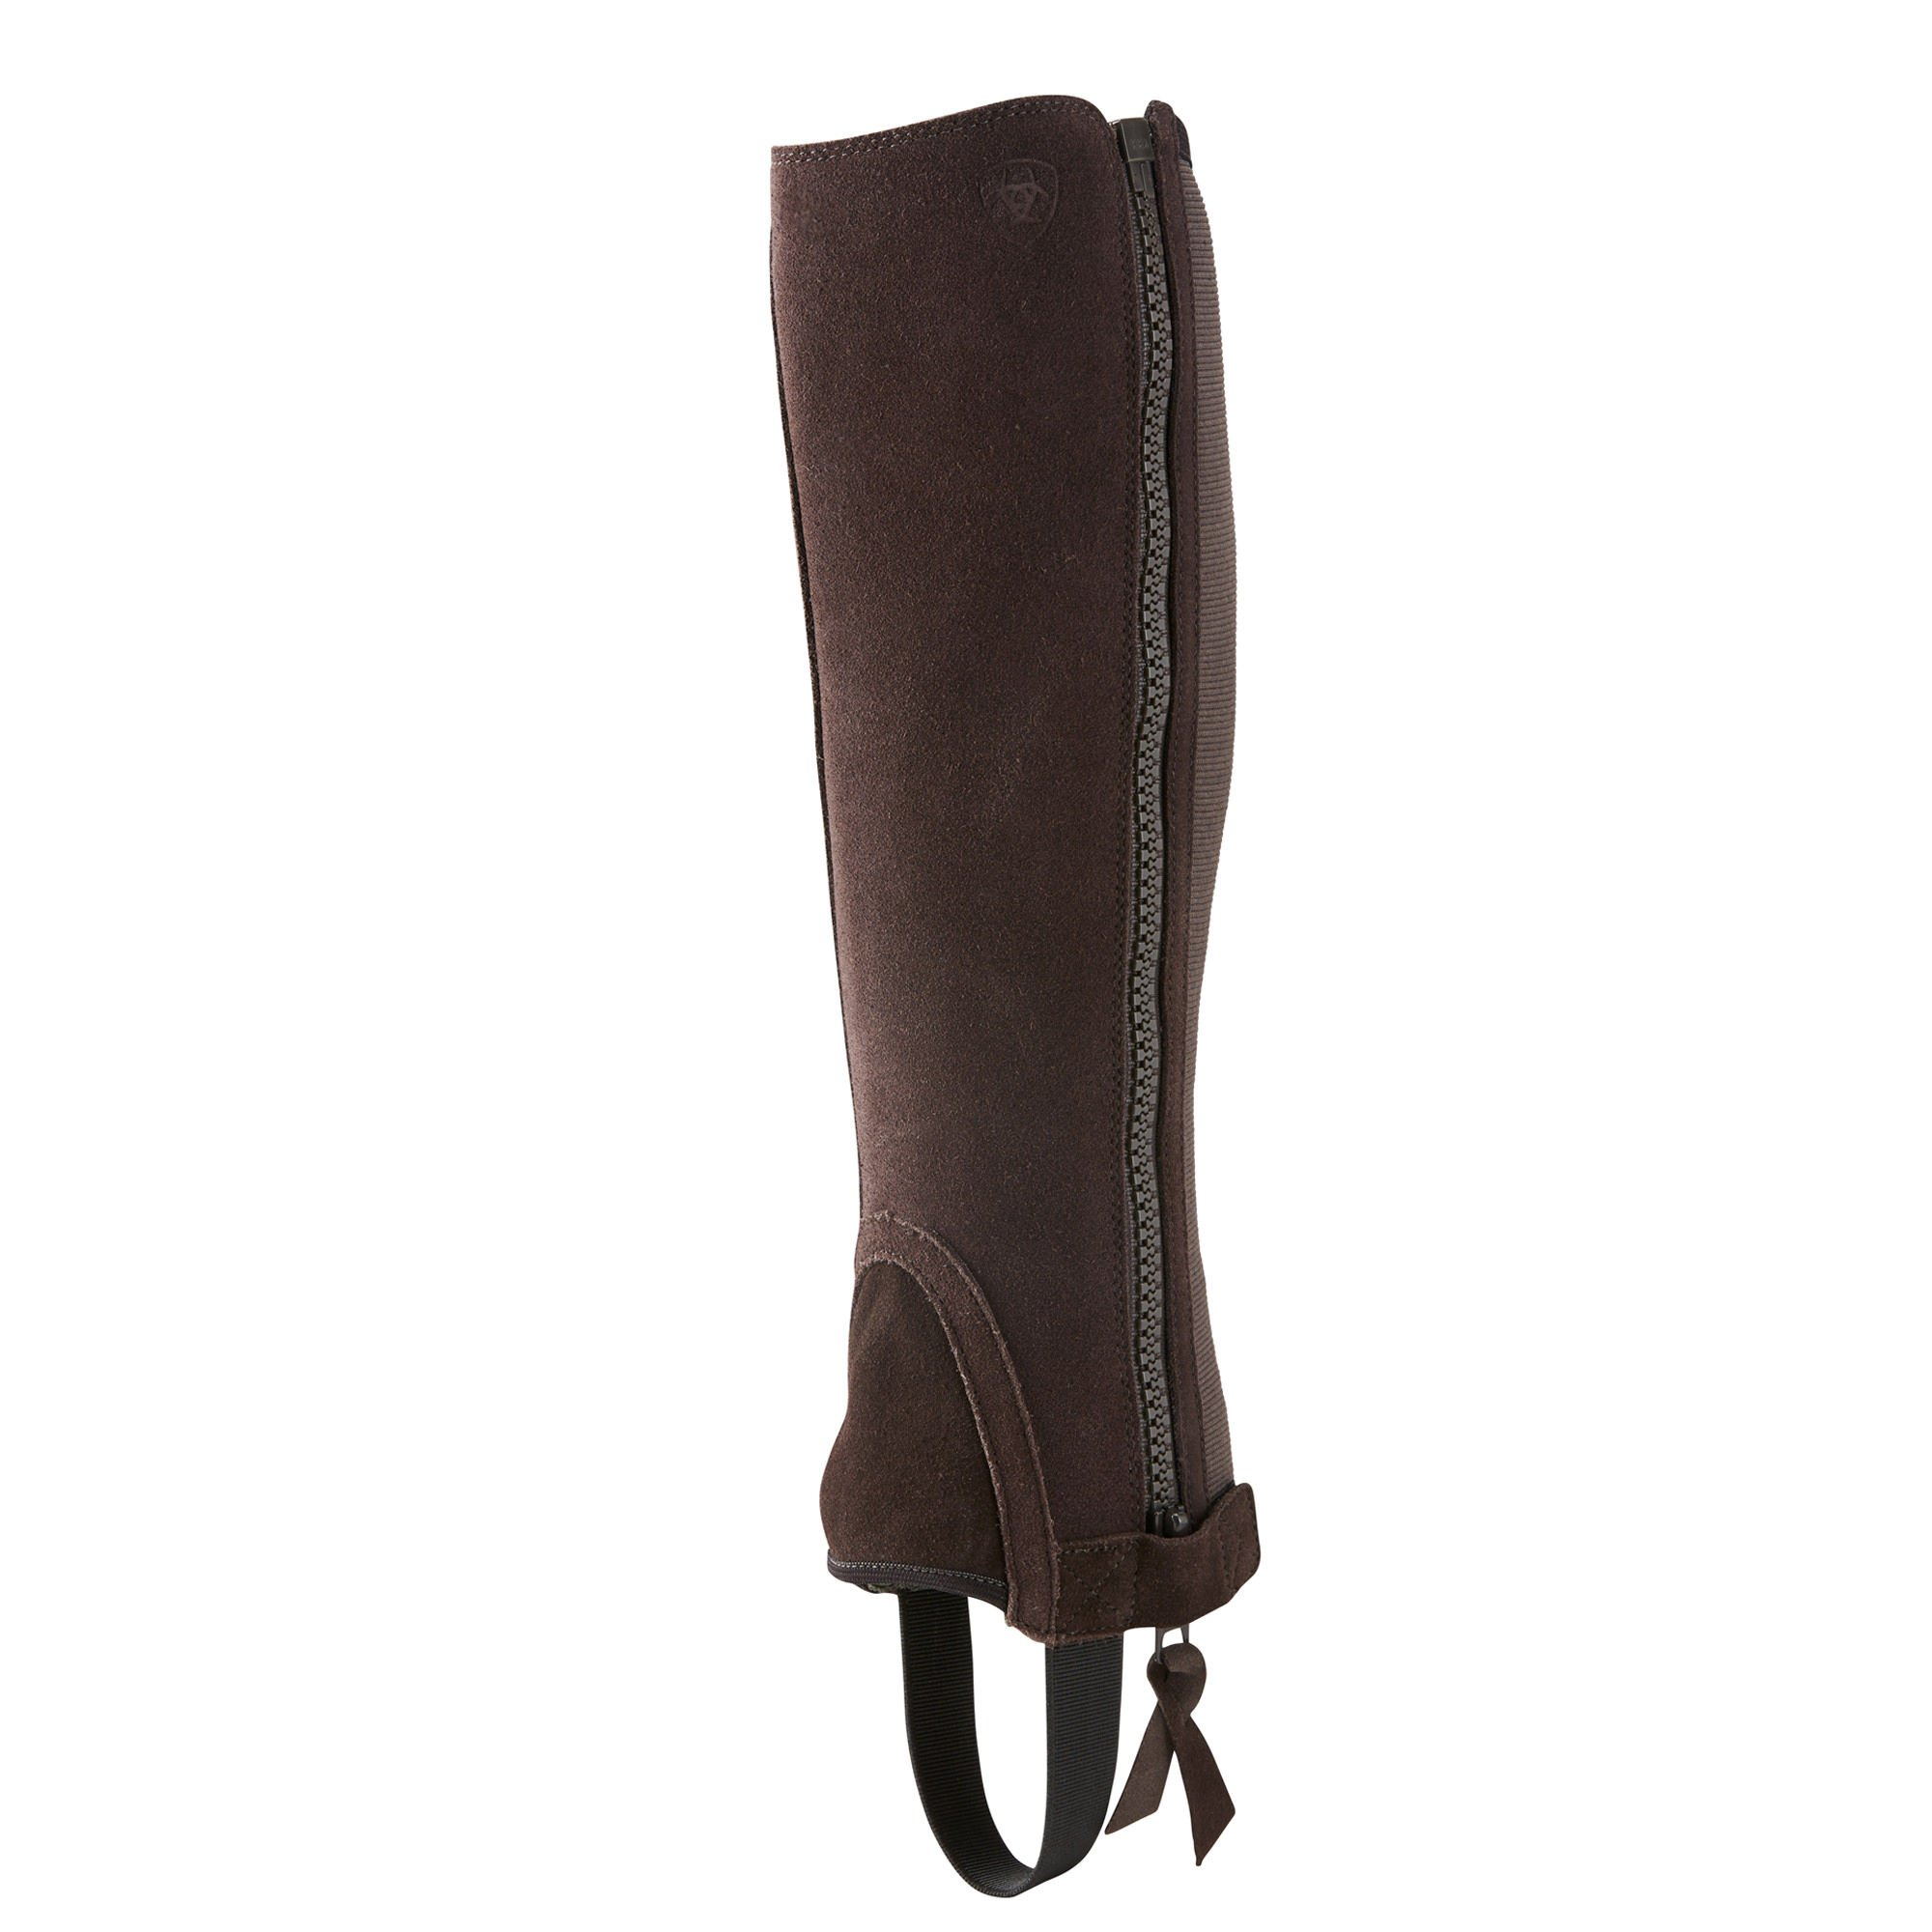 Ariat Unisex Breeze Chap Half Chaps M R Chocolate Suede